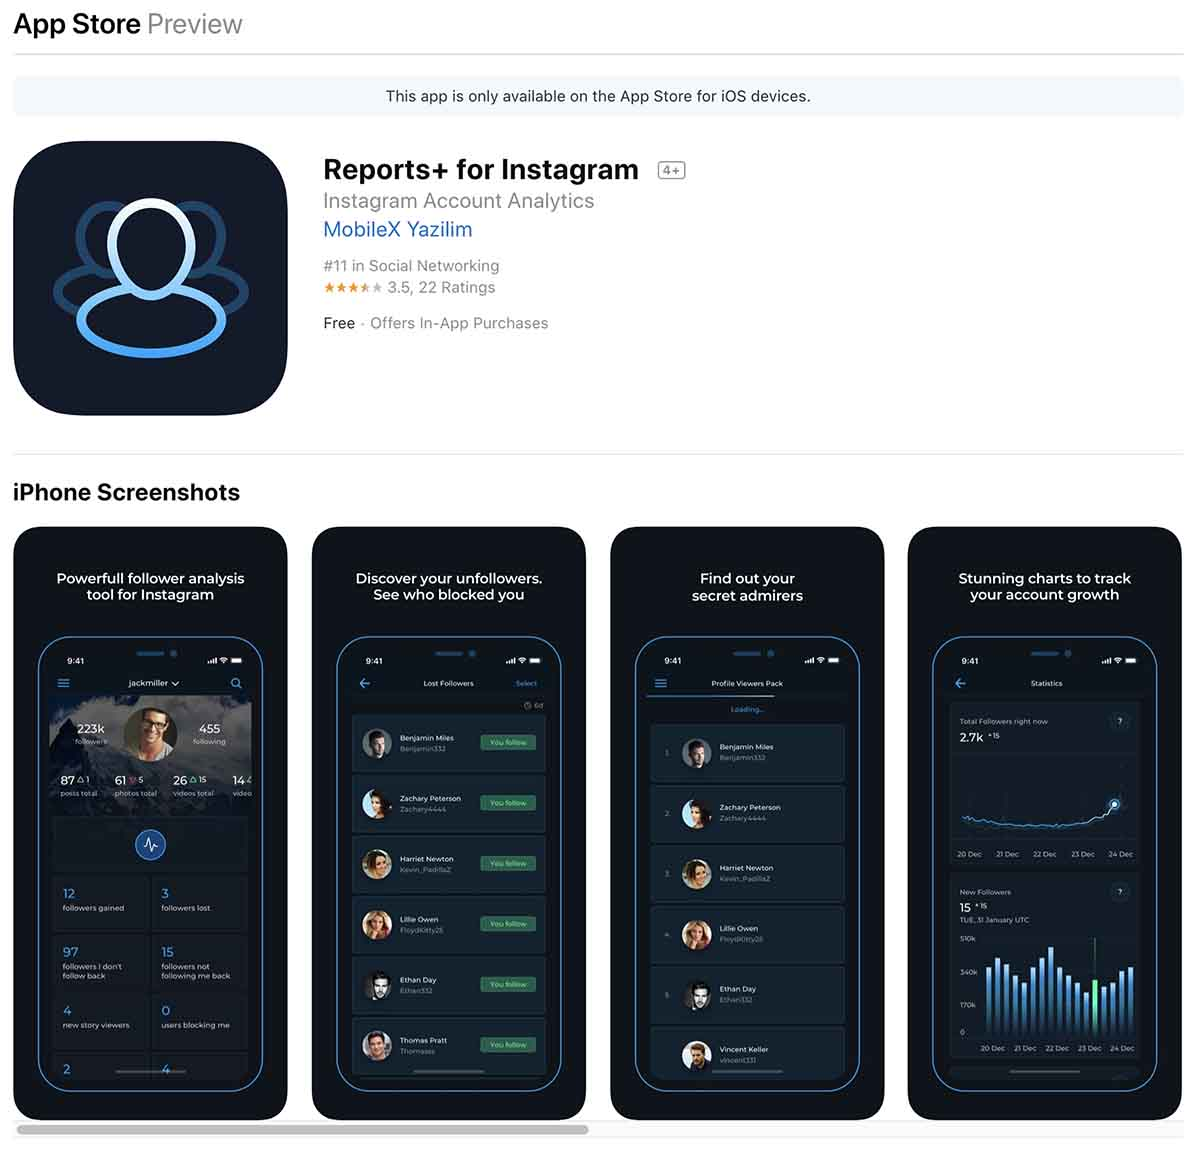 Screenshot of Reports+ for Instagram on the App Store